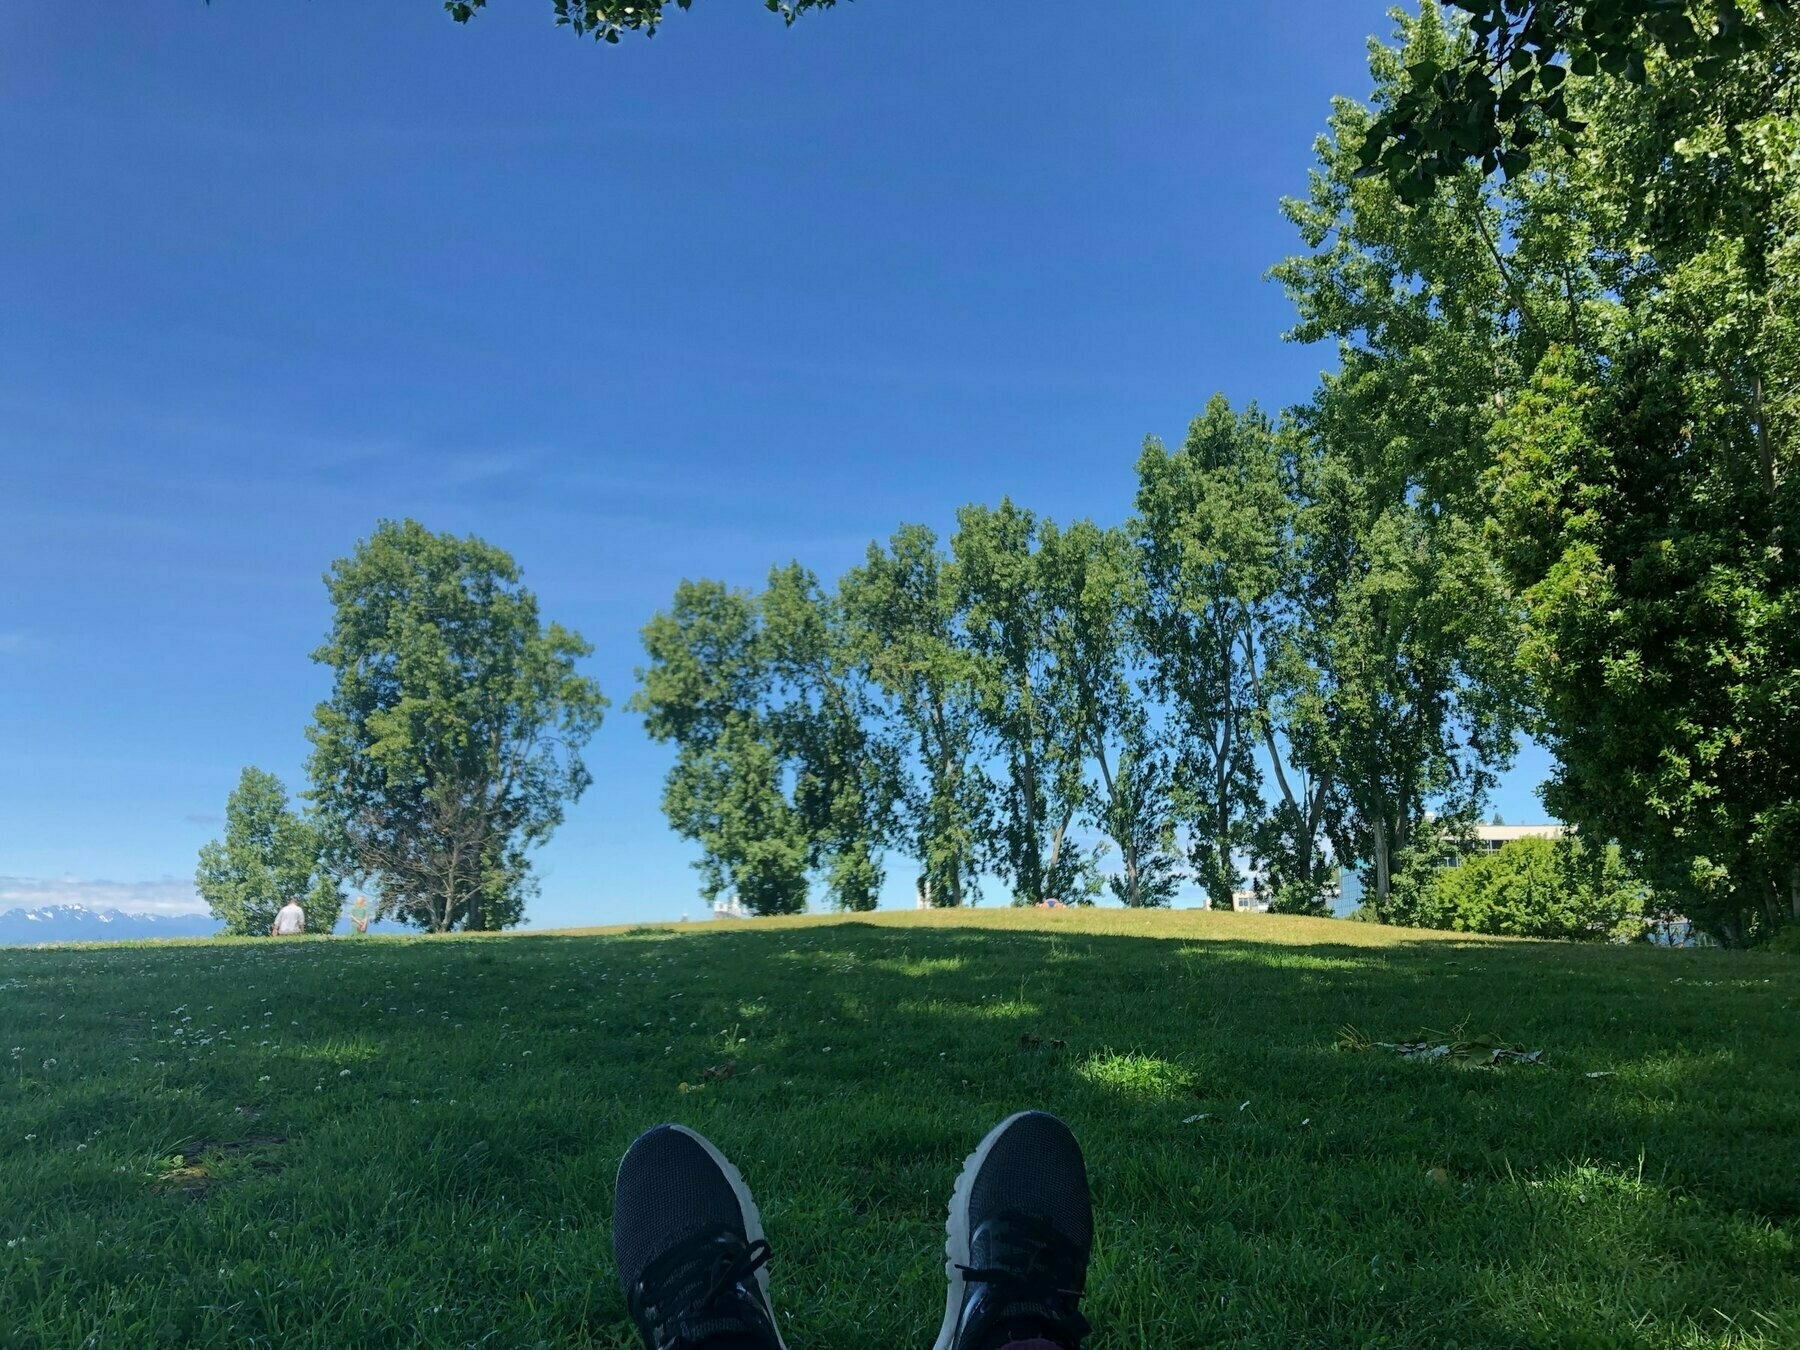 Cheri's feet (in sneakers) and a grassy field with cottonwood trees.